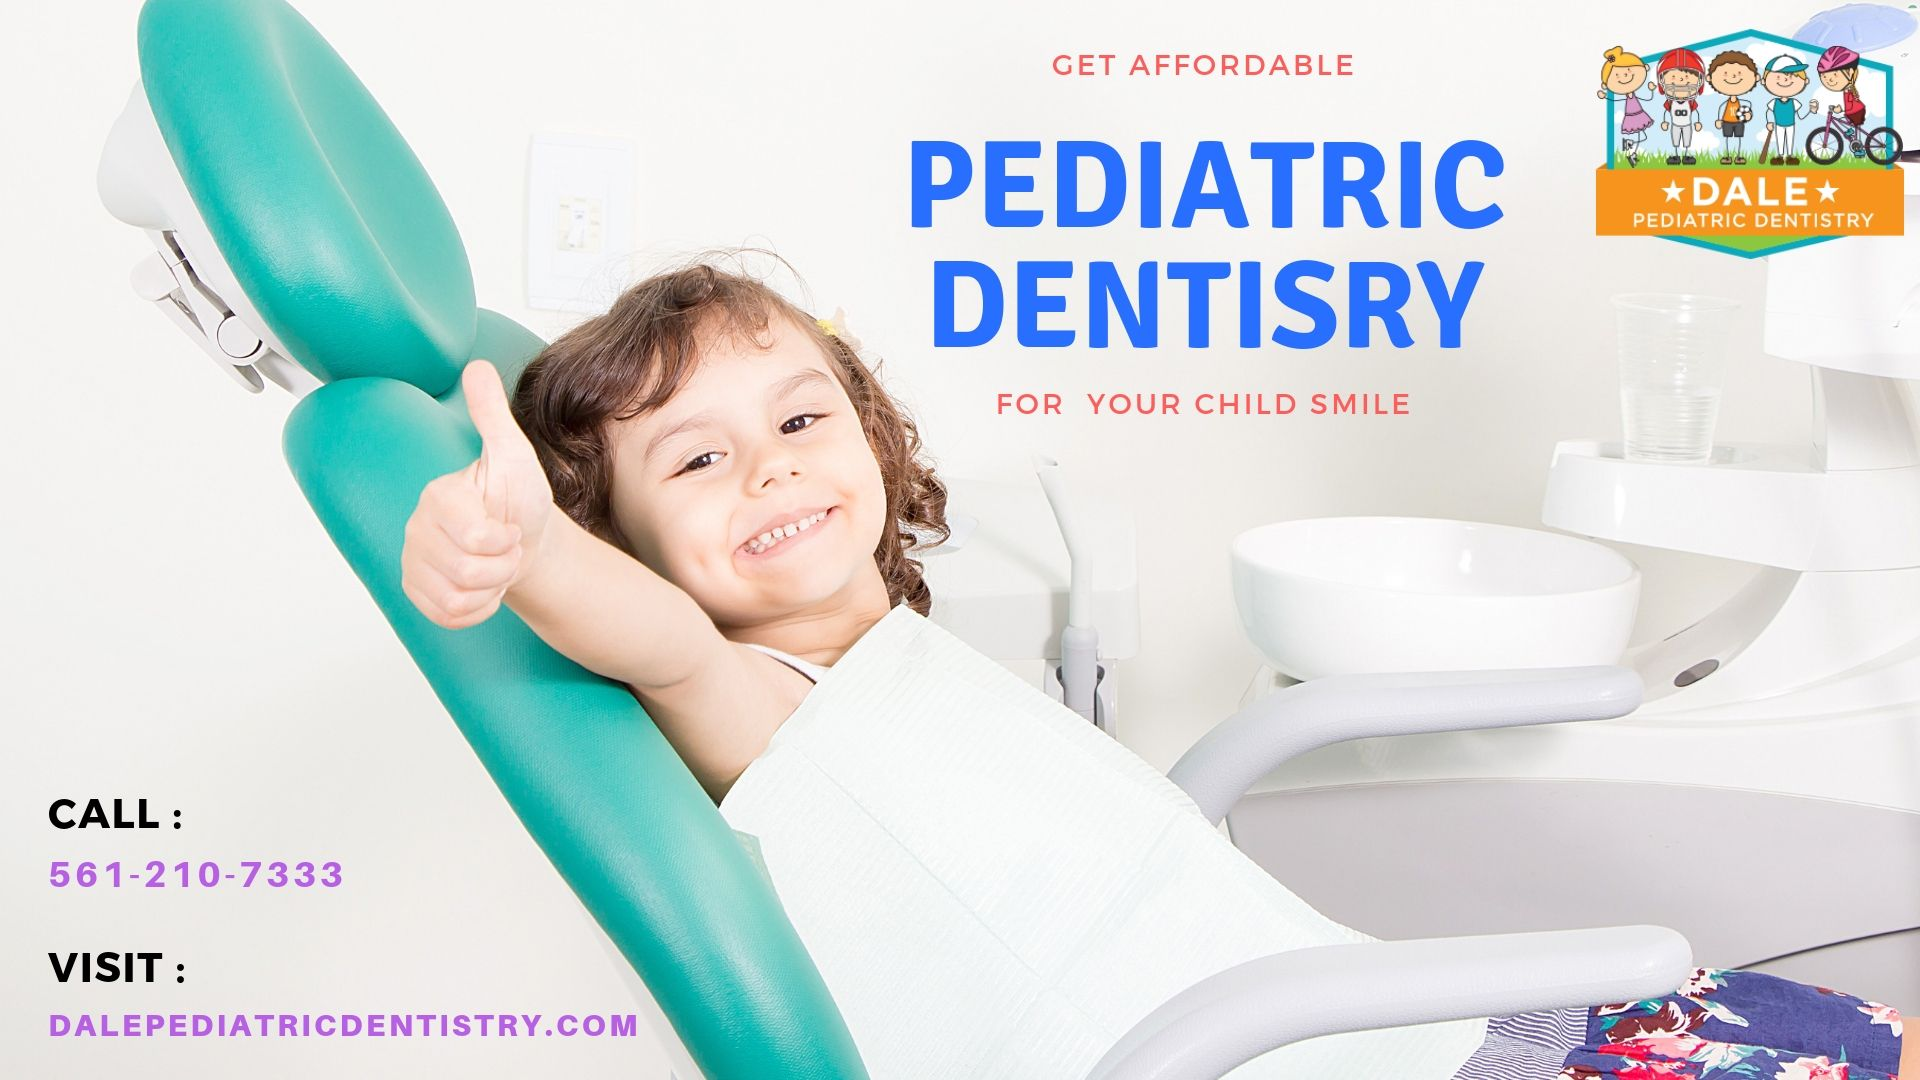 Get Affordable Pediatric Dentistry For Your Child Smile